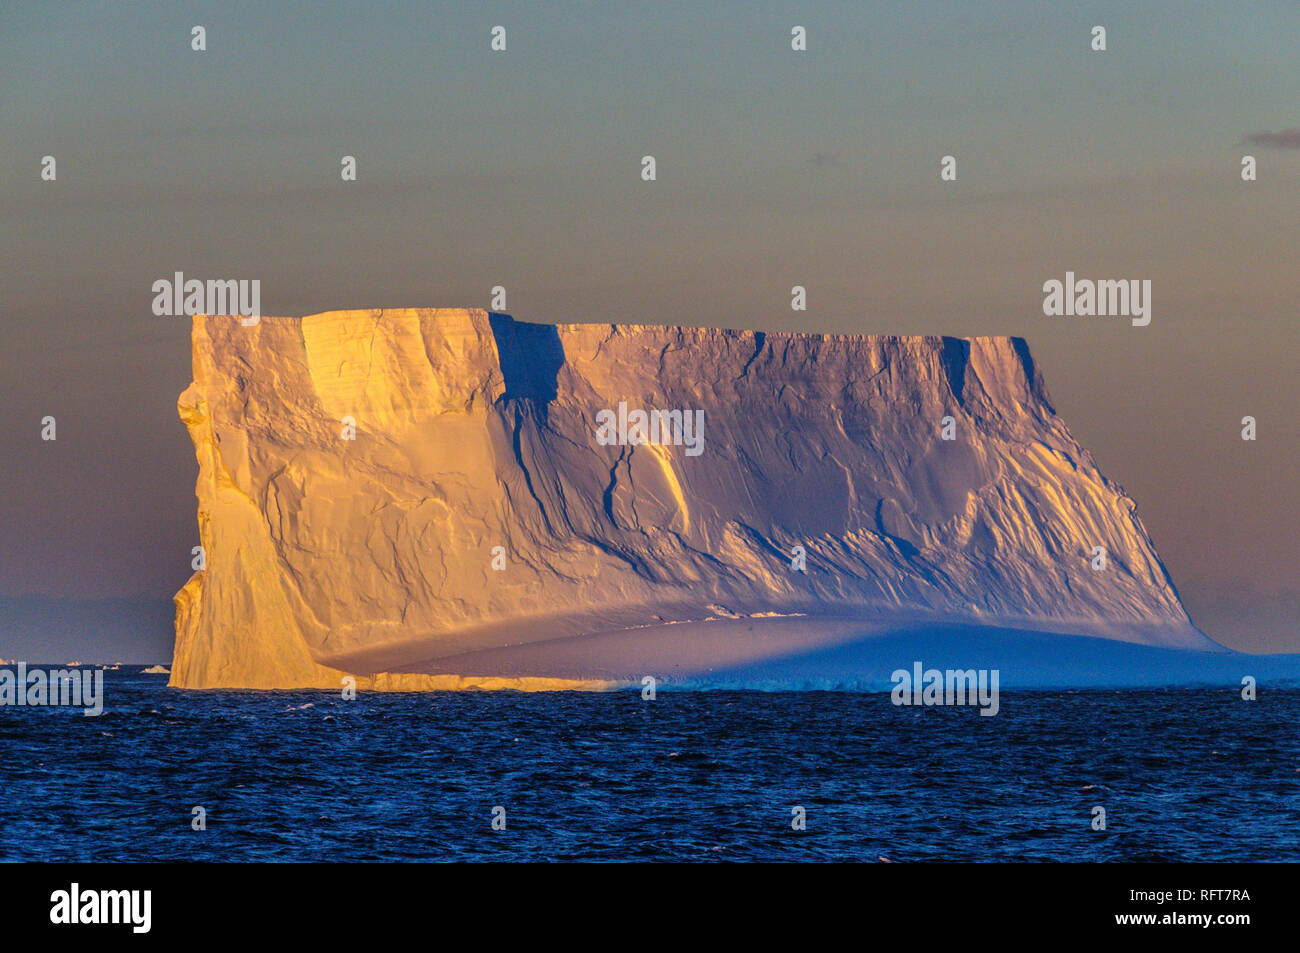 Antarctic Sunset: Floating Icebergs in the Weddell Sea, near the Antarctic Peninsula, as seen from an Antarctic Exploration Ship Stock Photo